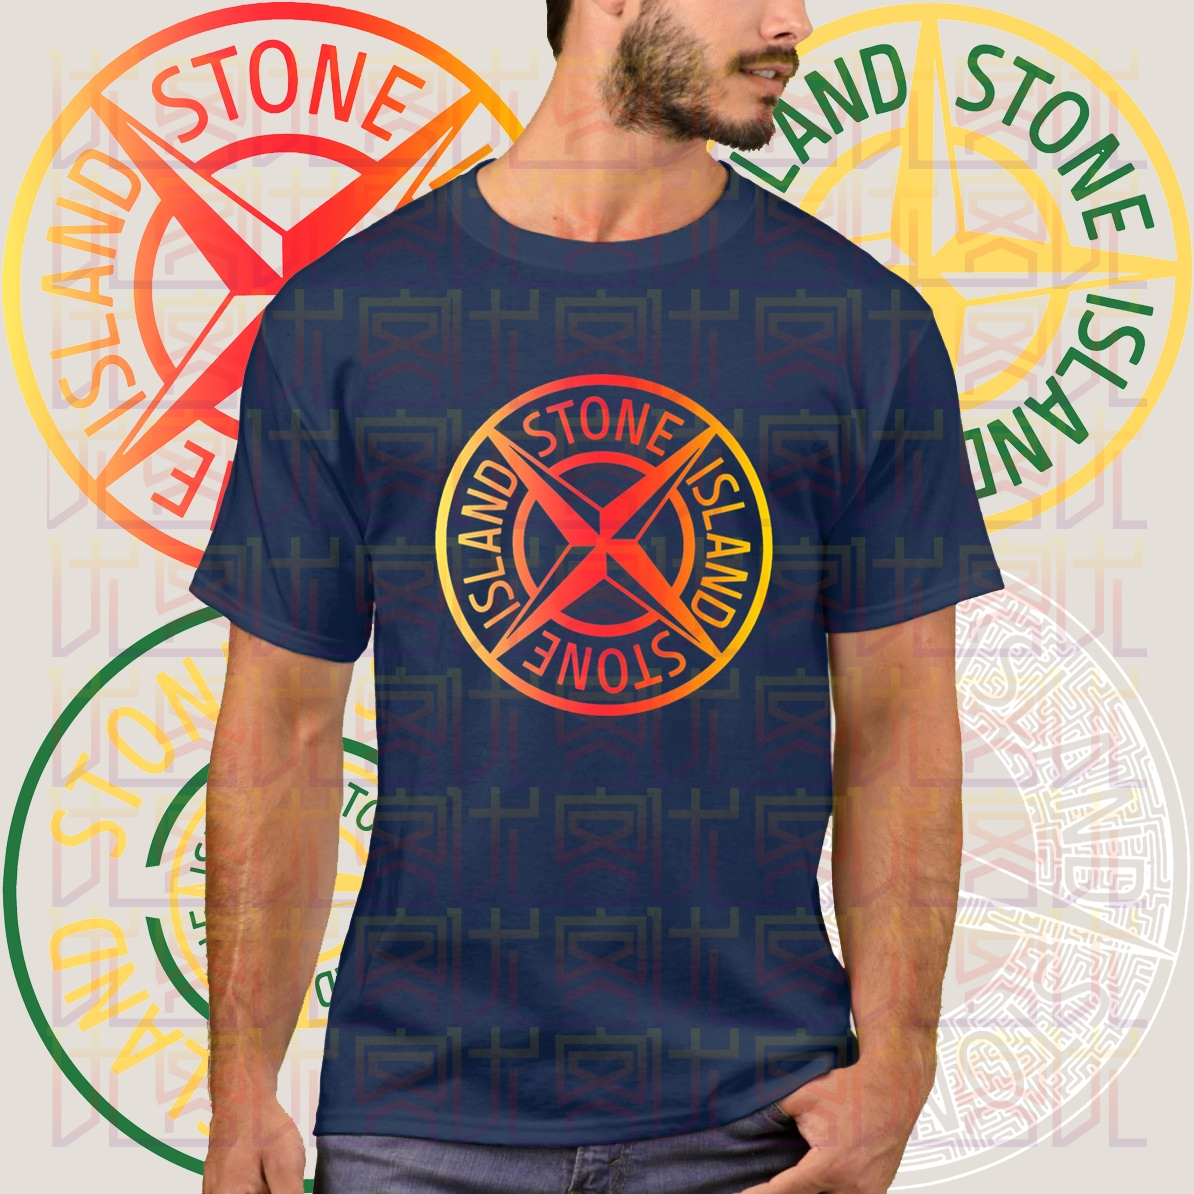 2020 New Stone-Island Logo Summer Print Navy T-Shirt Clothes Popular Shirt Cotton Tees Amazing Short Sleeve Unique For Men Tops